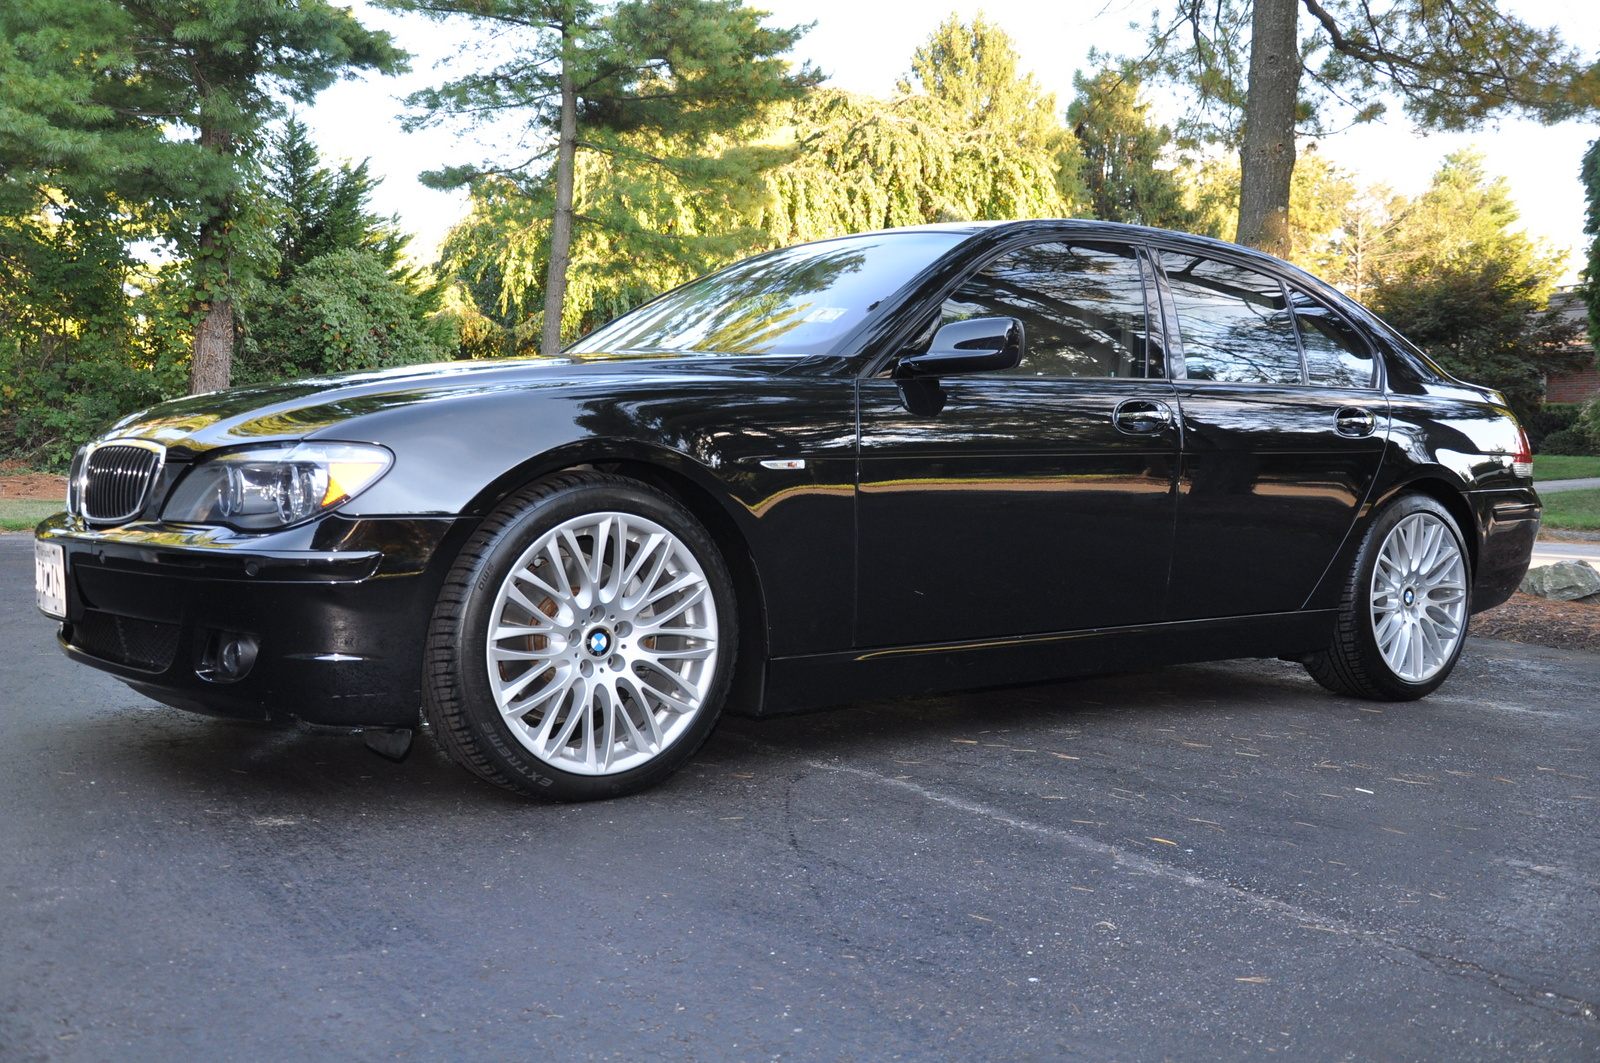 2008 BMW 7 Series - Pictures - CarGurus